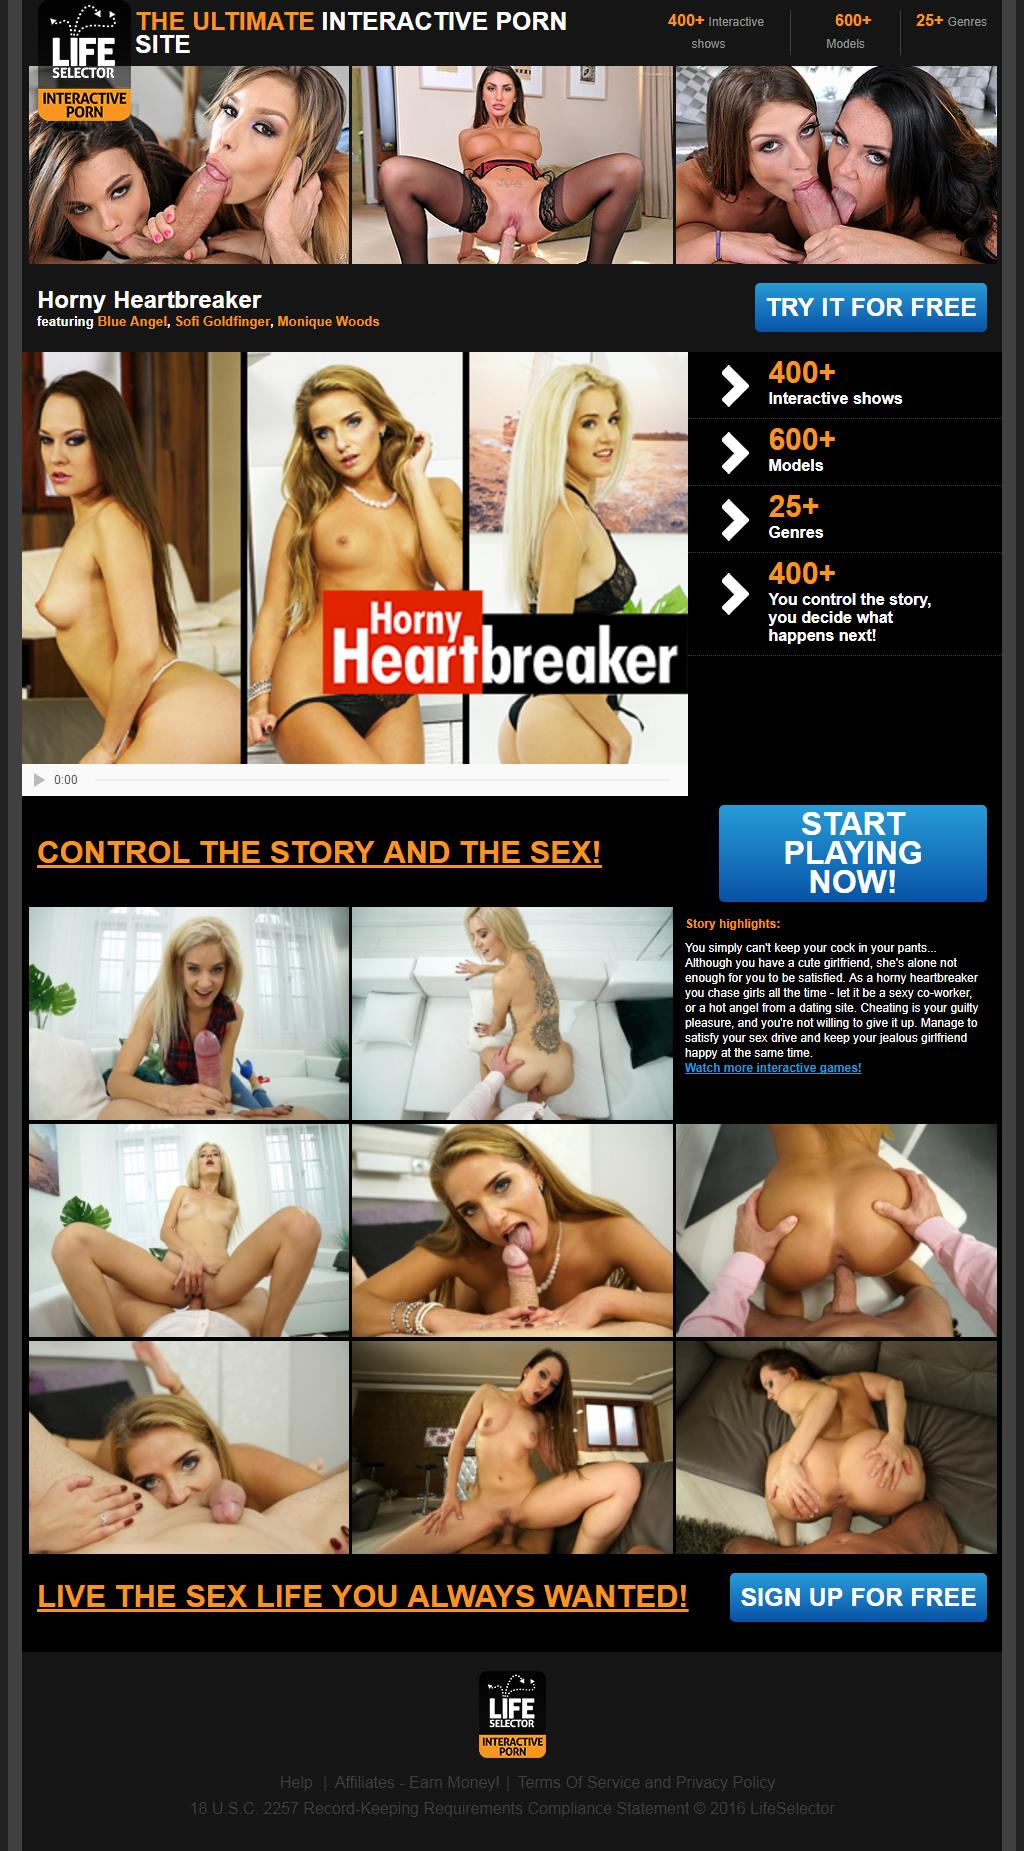 Horny Heartbreaker: You simply can't keep your cock in your pants... Although you have a cute girlfriend, she's alone not enough for you to be satisfied. As a horny heartbreaker you chase girls all the time - let it be a sexy co-worker, or a hot angel from a dating site. Cheating is your guilty pleasure, and you're not willing to give it up. Manage to satisfy your sex drive and keep your jealous girlfriend happy at the same time.